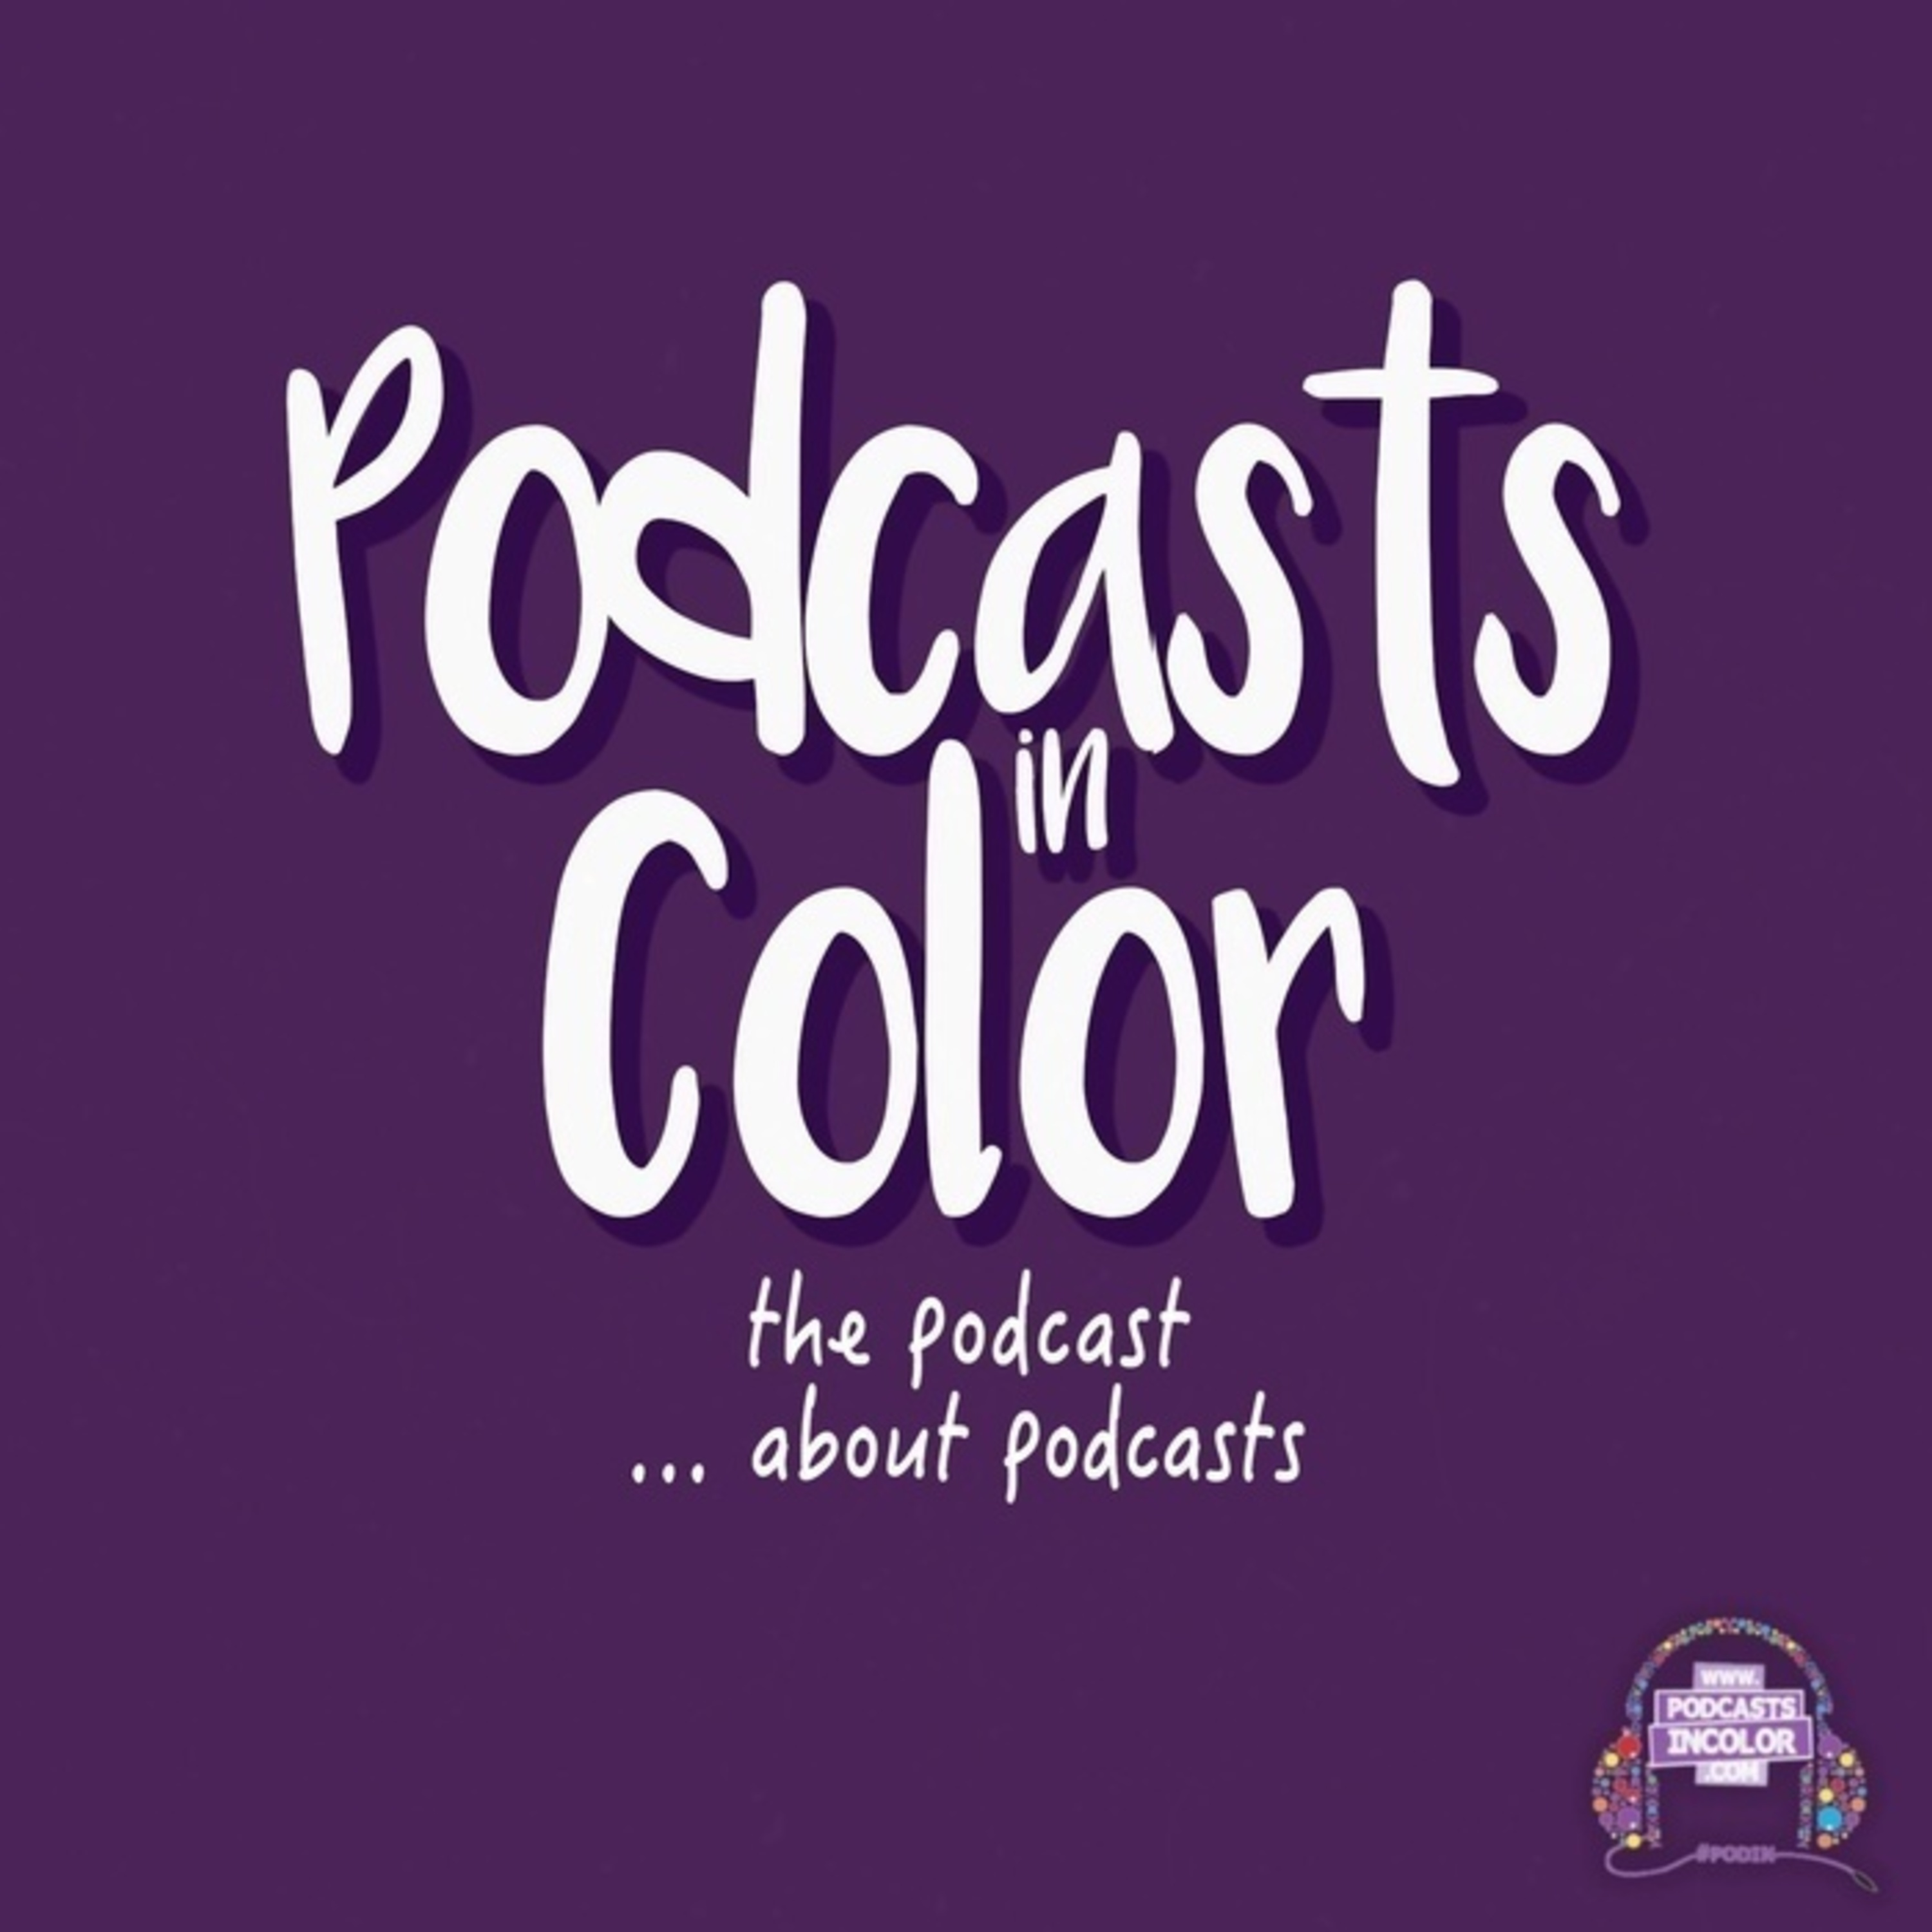 More Podcasty Updates!